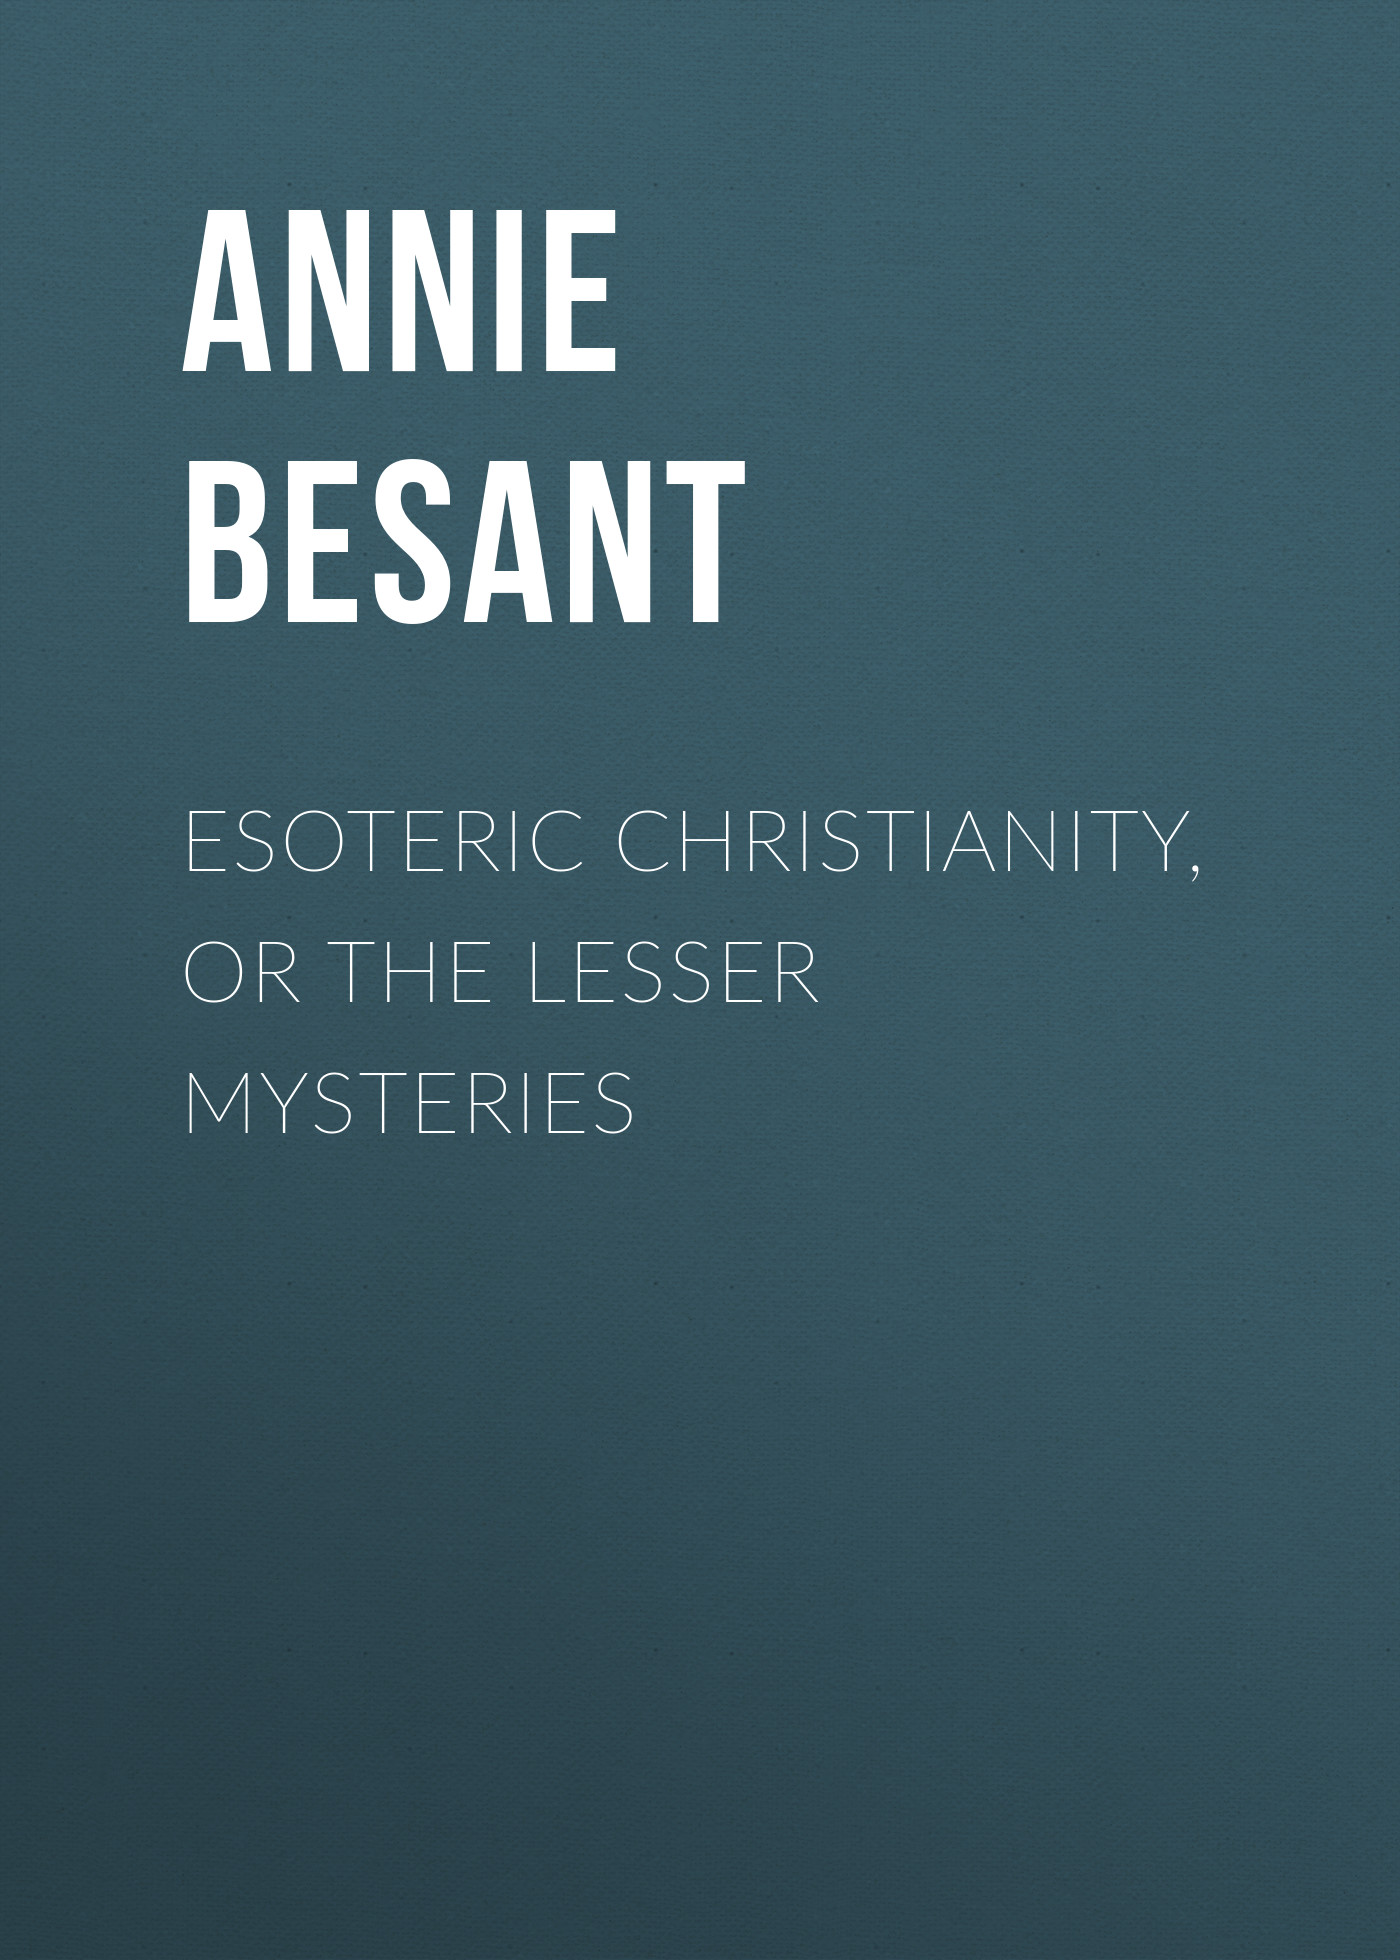 Annie Besant Esoteric Christianity, or The Lesser Mysteries esoteric 03 review